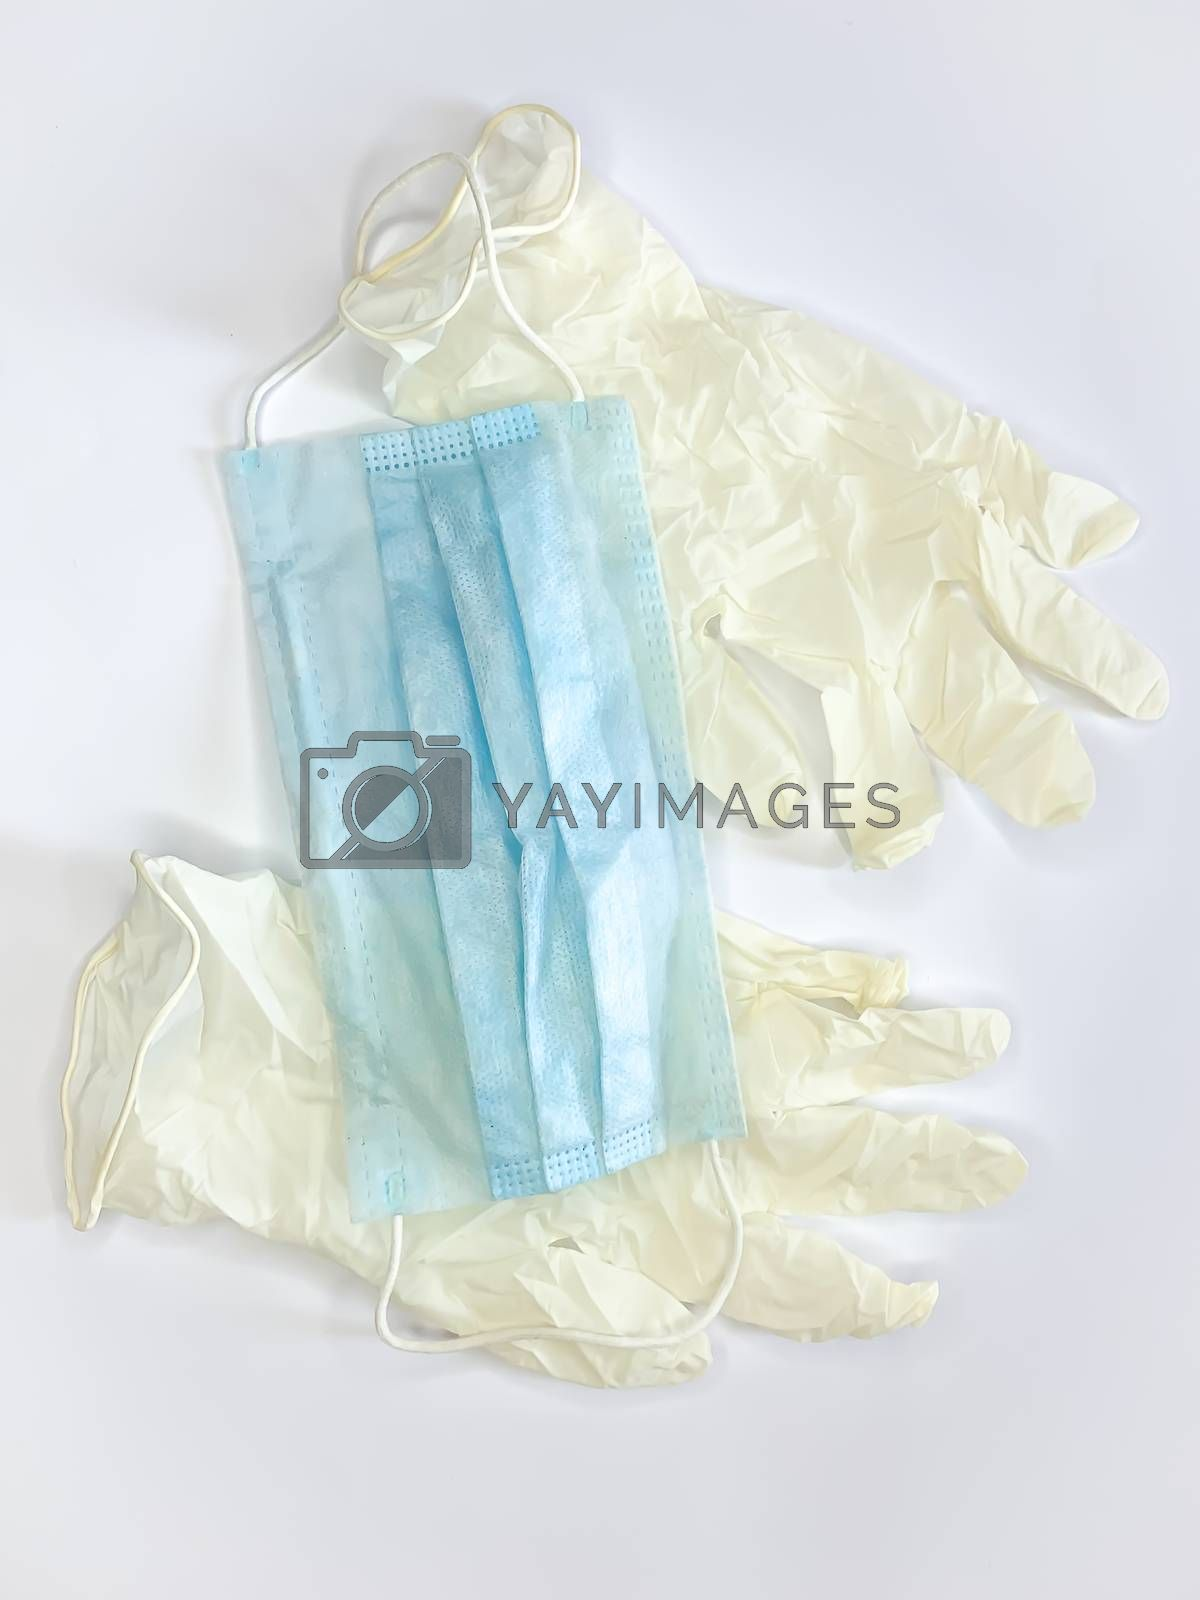 Antibacterial medical mask of blue color and gloves on a white background virus epidemic corona virus protection